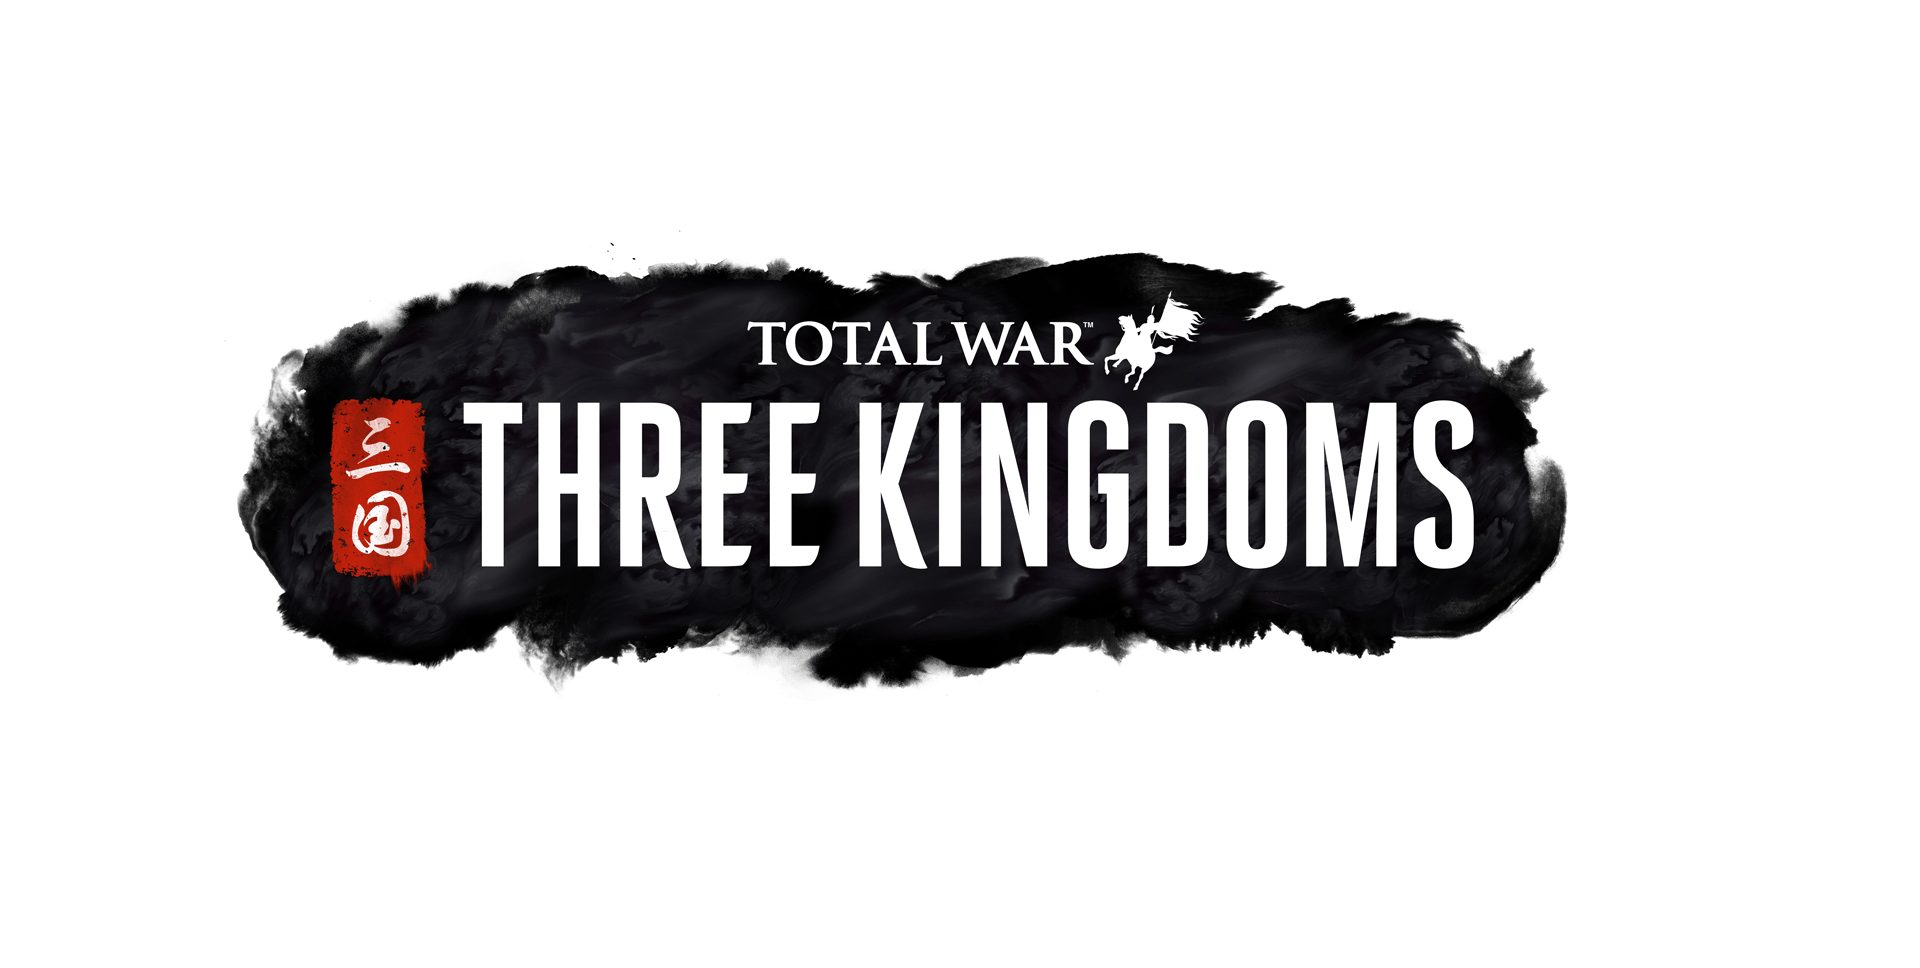 TOTAL WAR:WARHAMMER NORSCA RACE PACK AND FREE 30TH